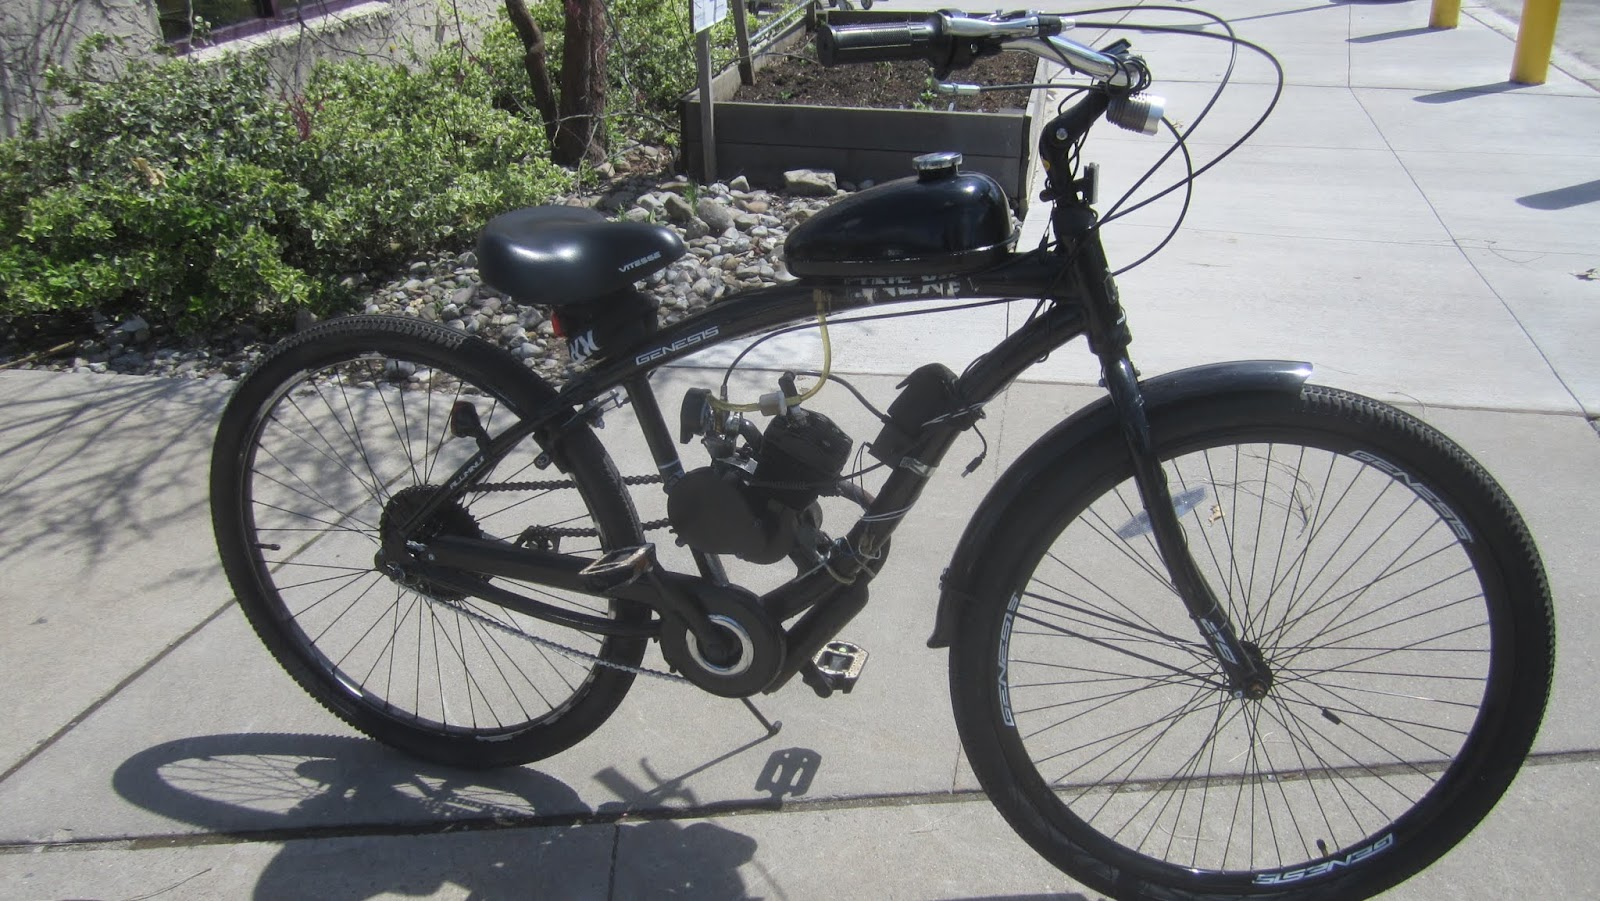 Bicycle Motorcycle Hybrid   PrincetonPrimer